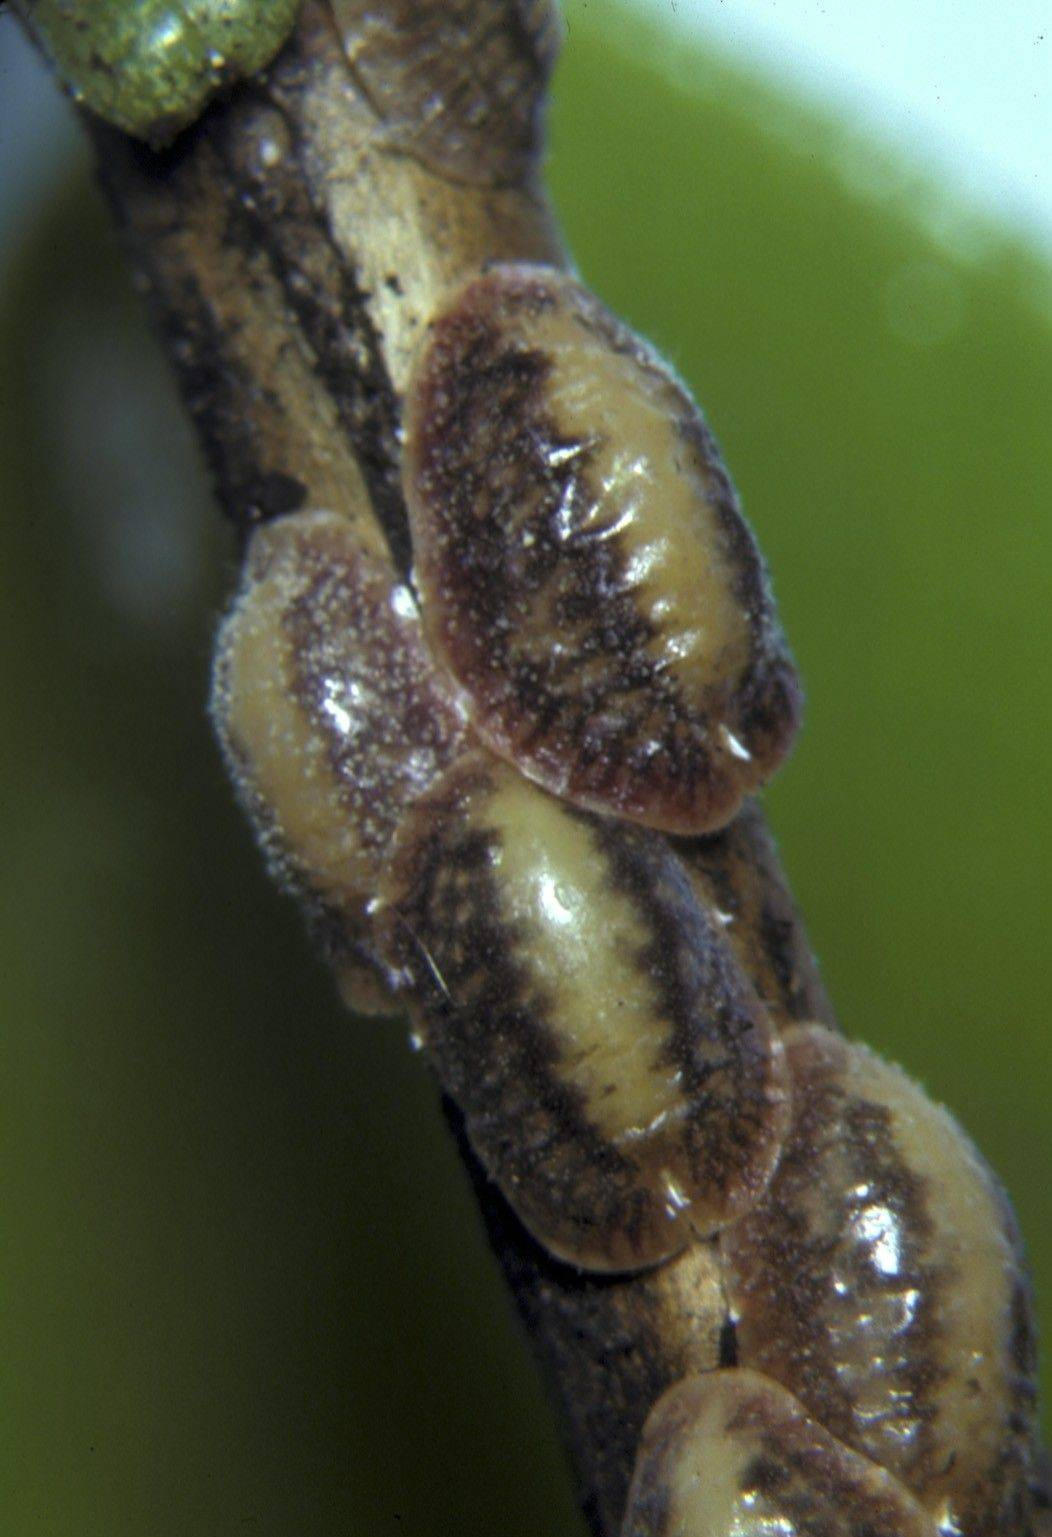 Hard-shell scale afflicts fruit trees, where ants farm them aggressively.